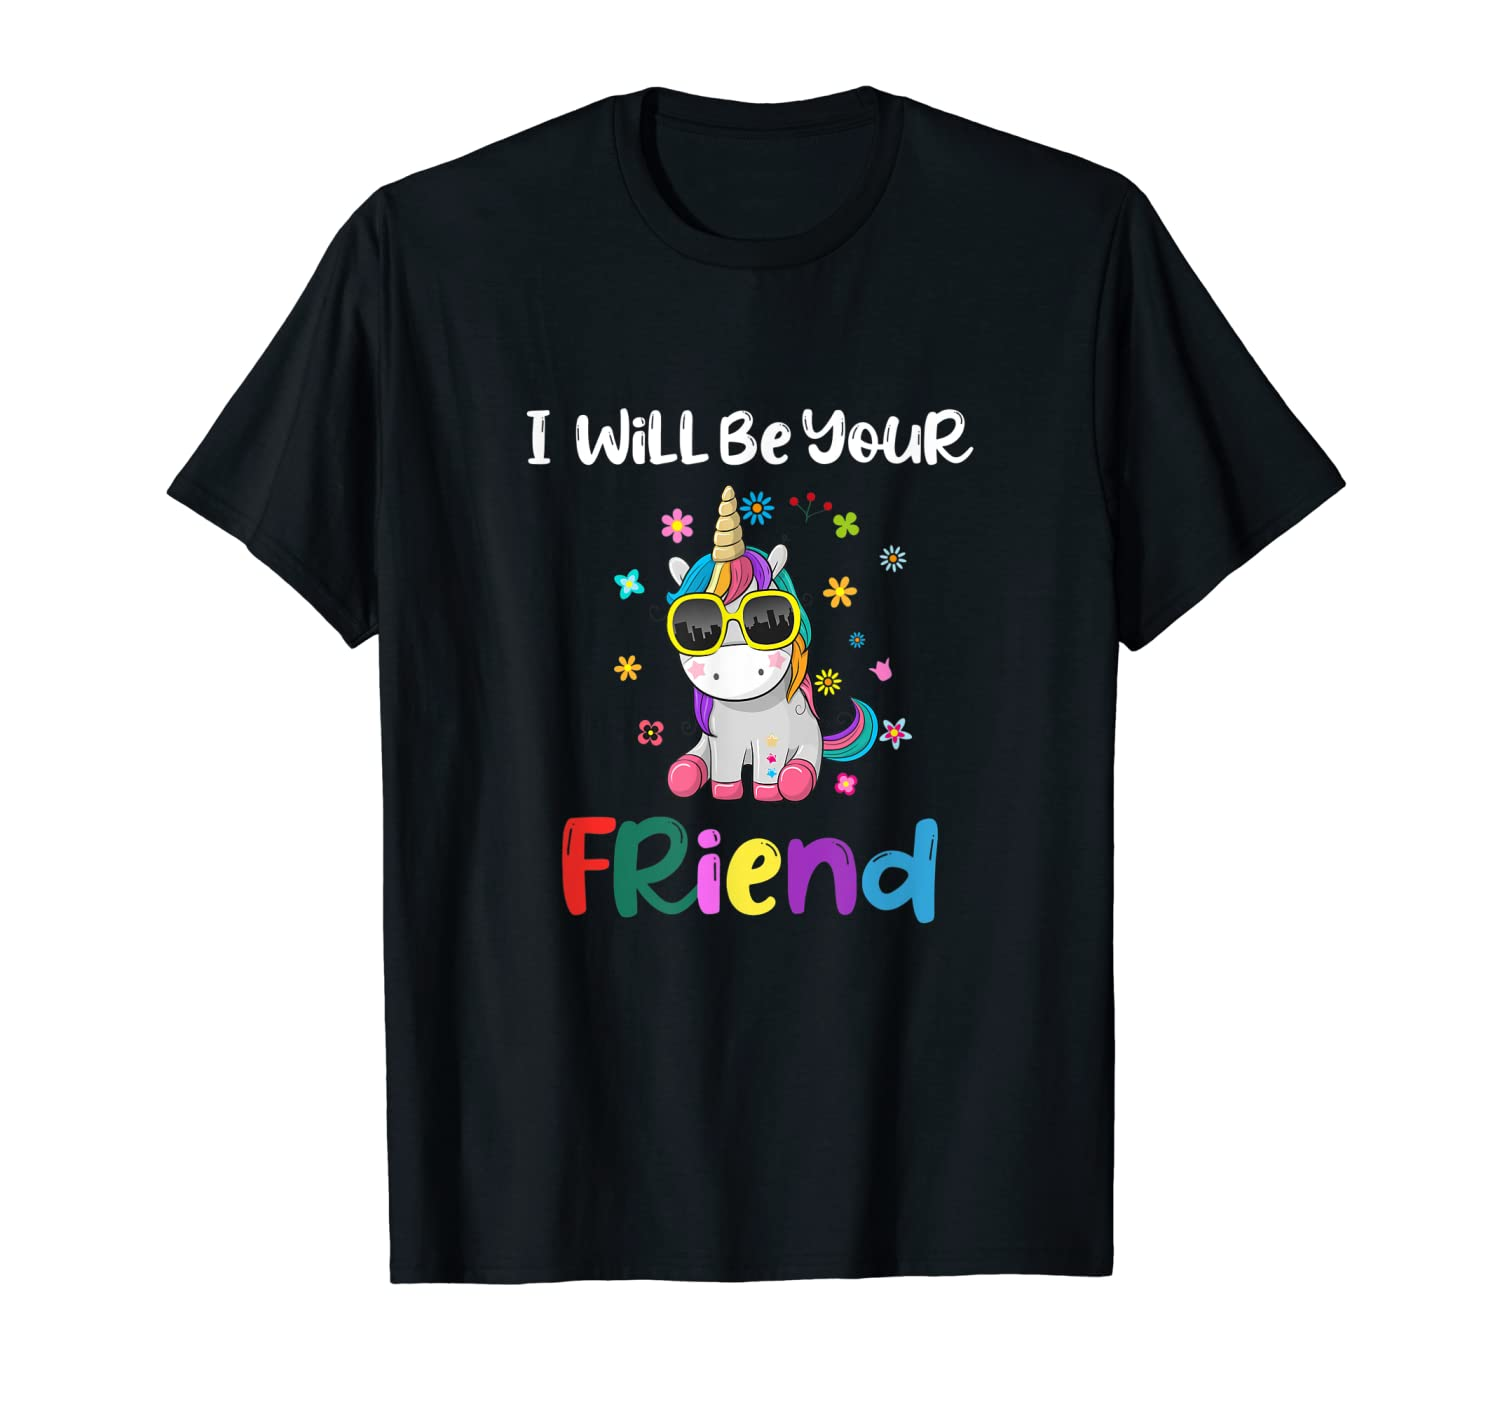 I Will Be Your Friend Shirts